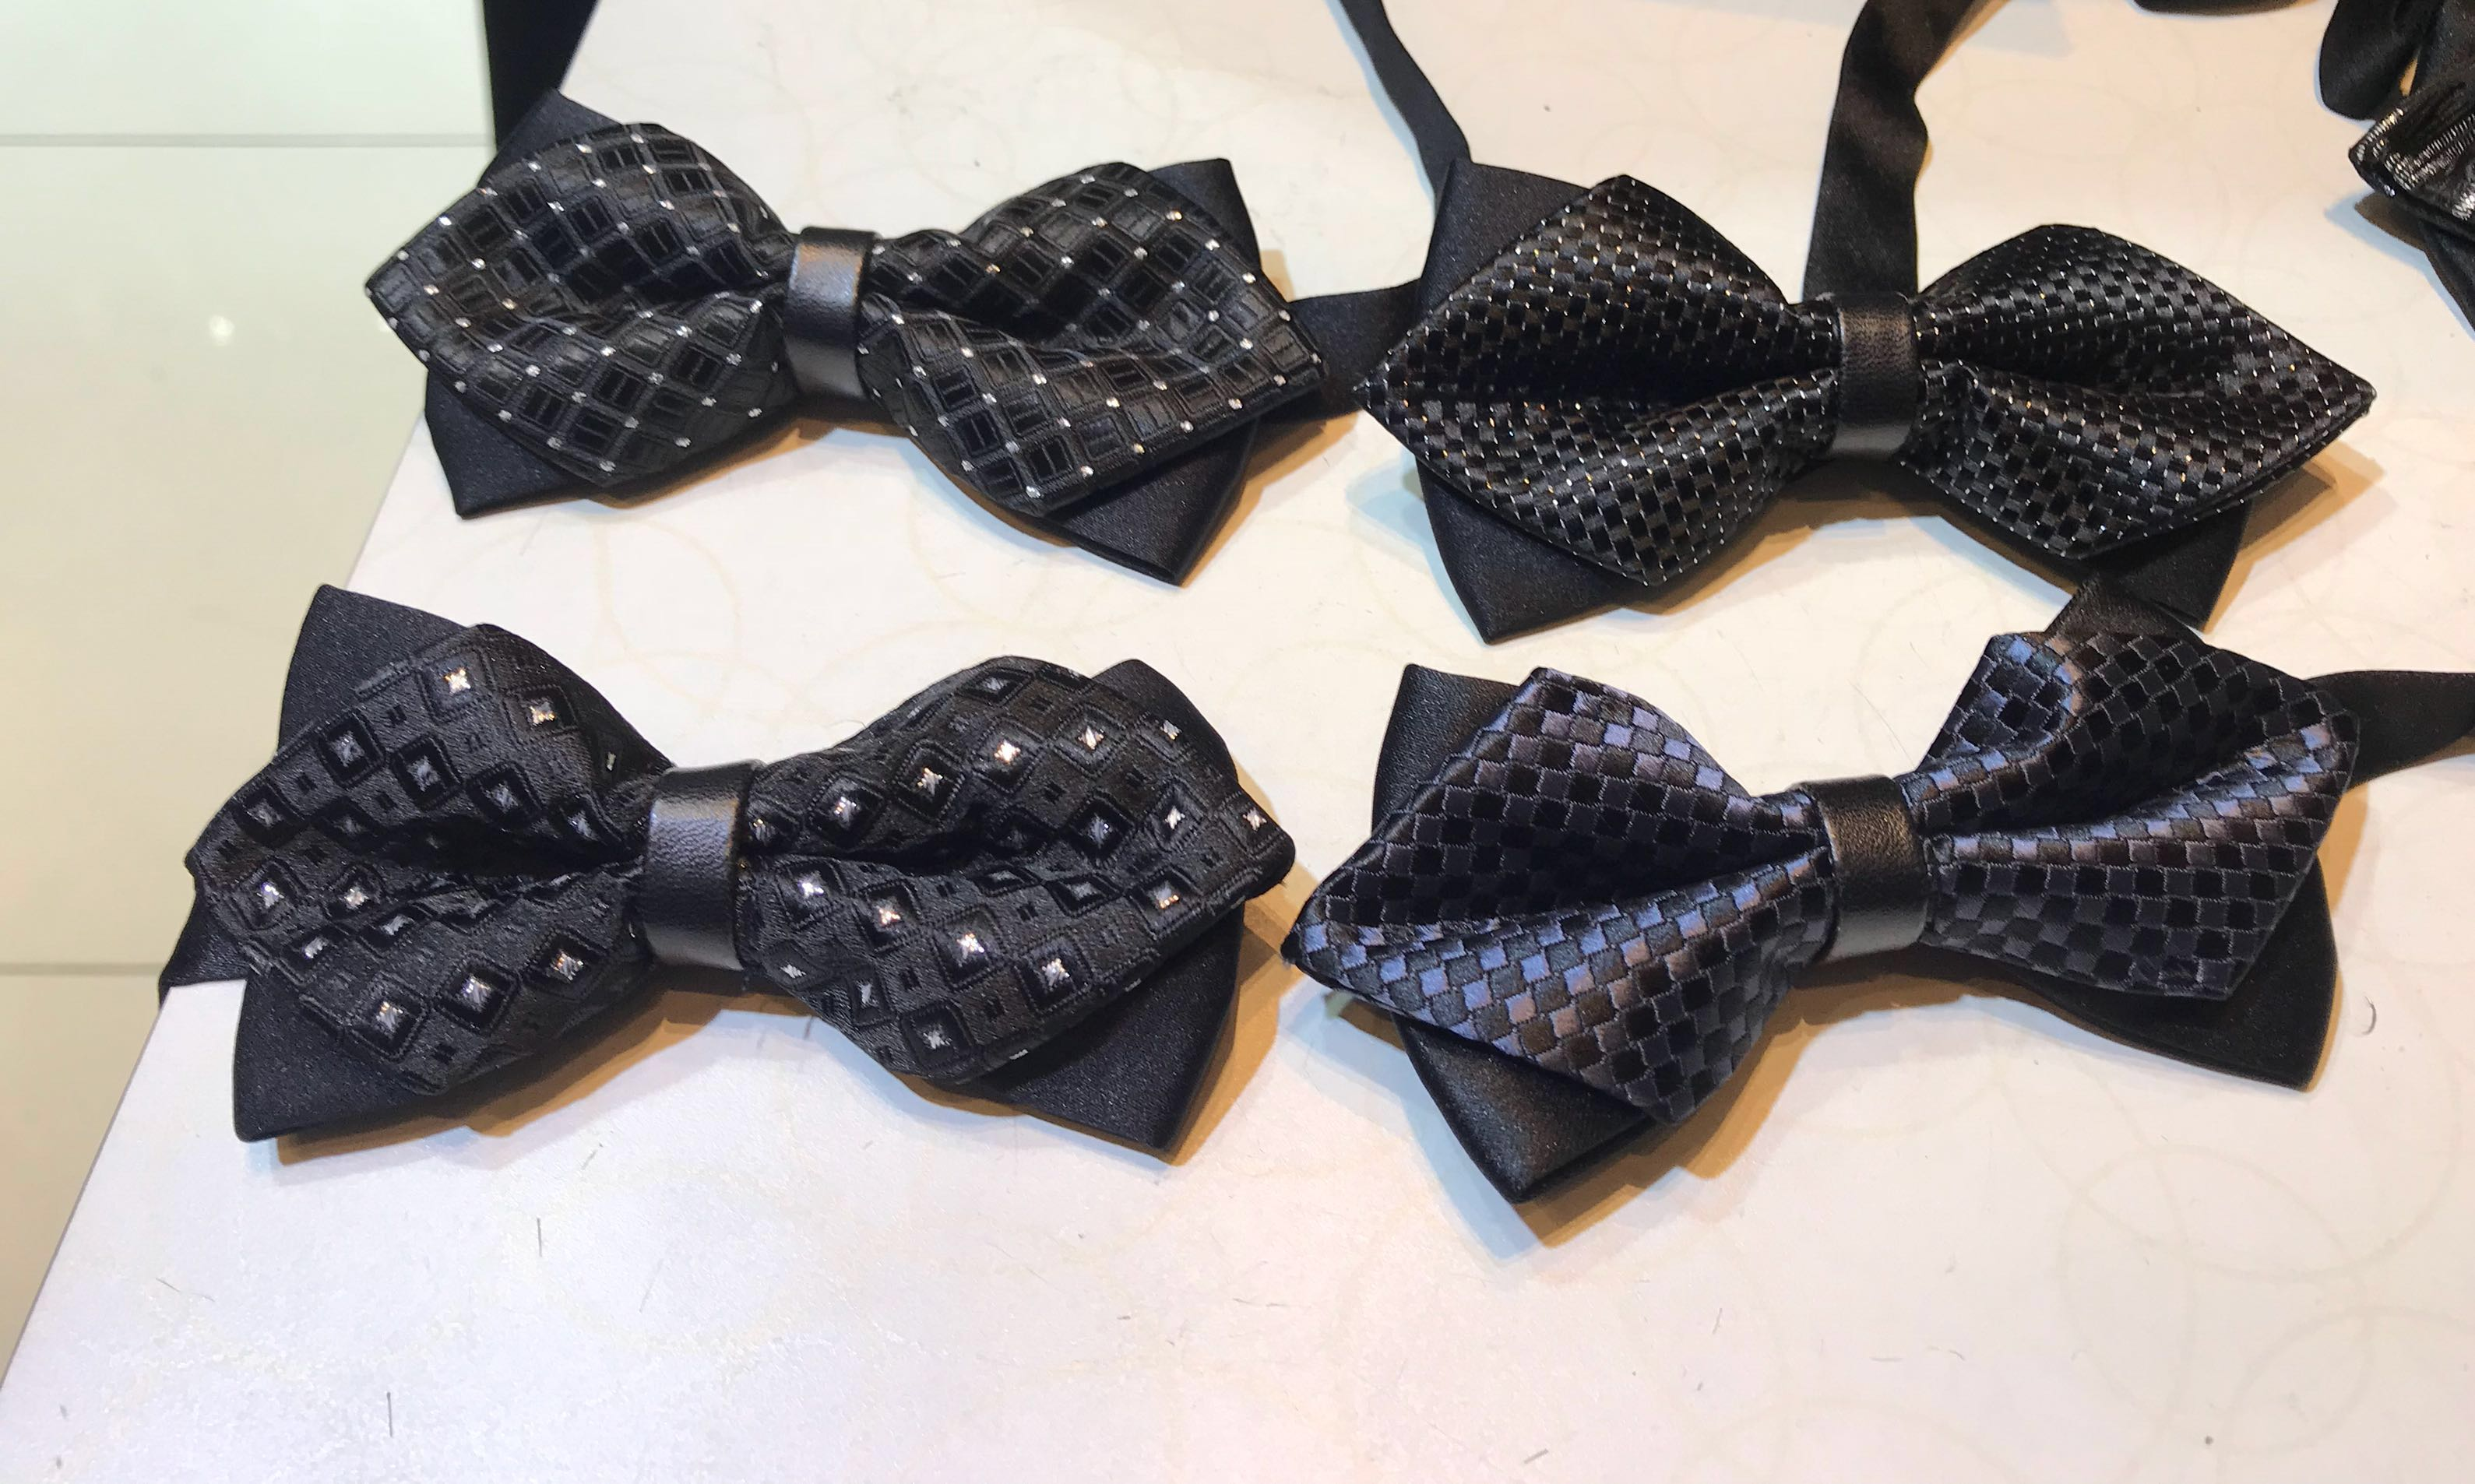 b92ed9ced802 Instock classic bow tie wedding accessories for bridegroom party tie ...